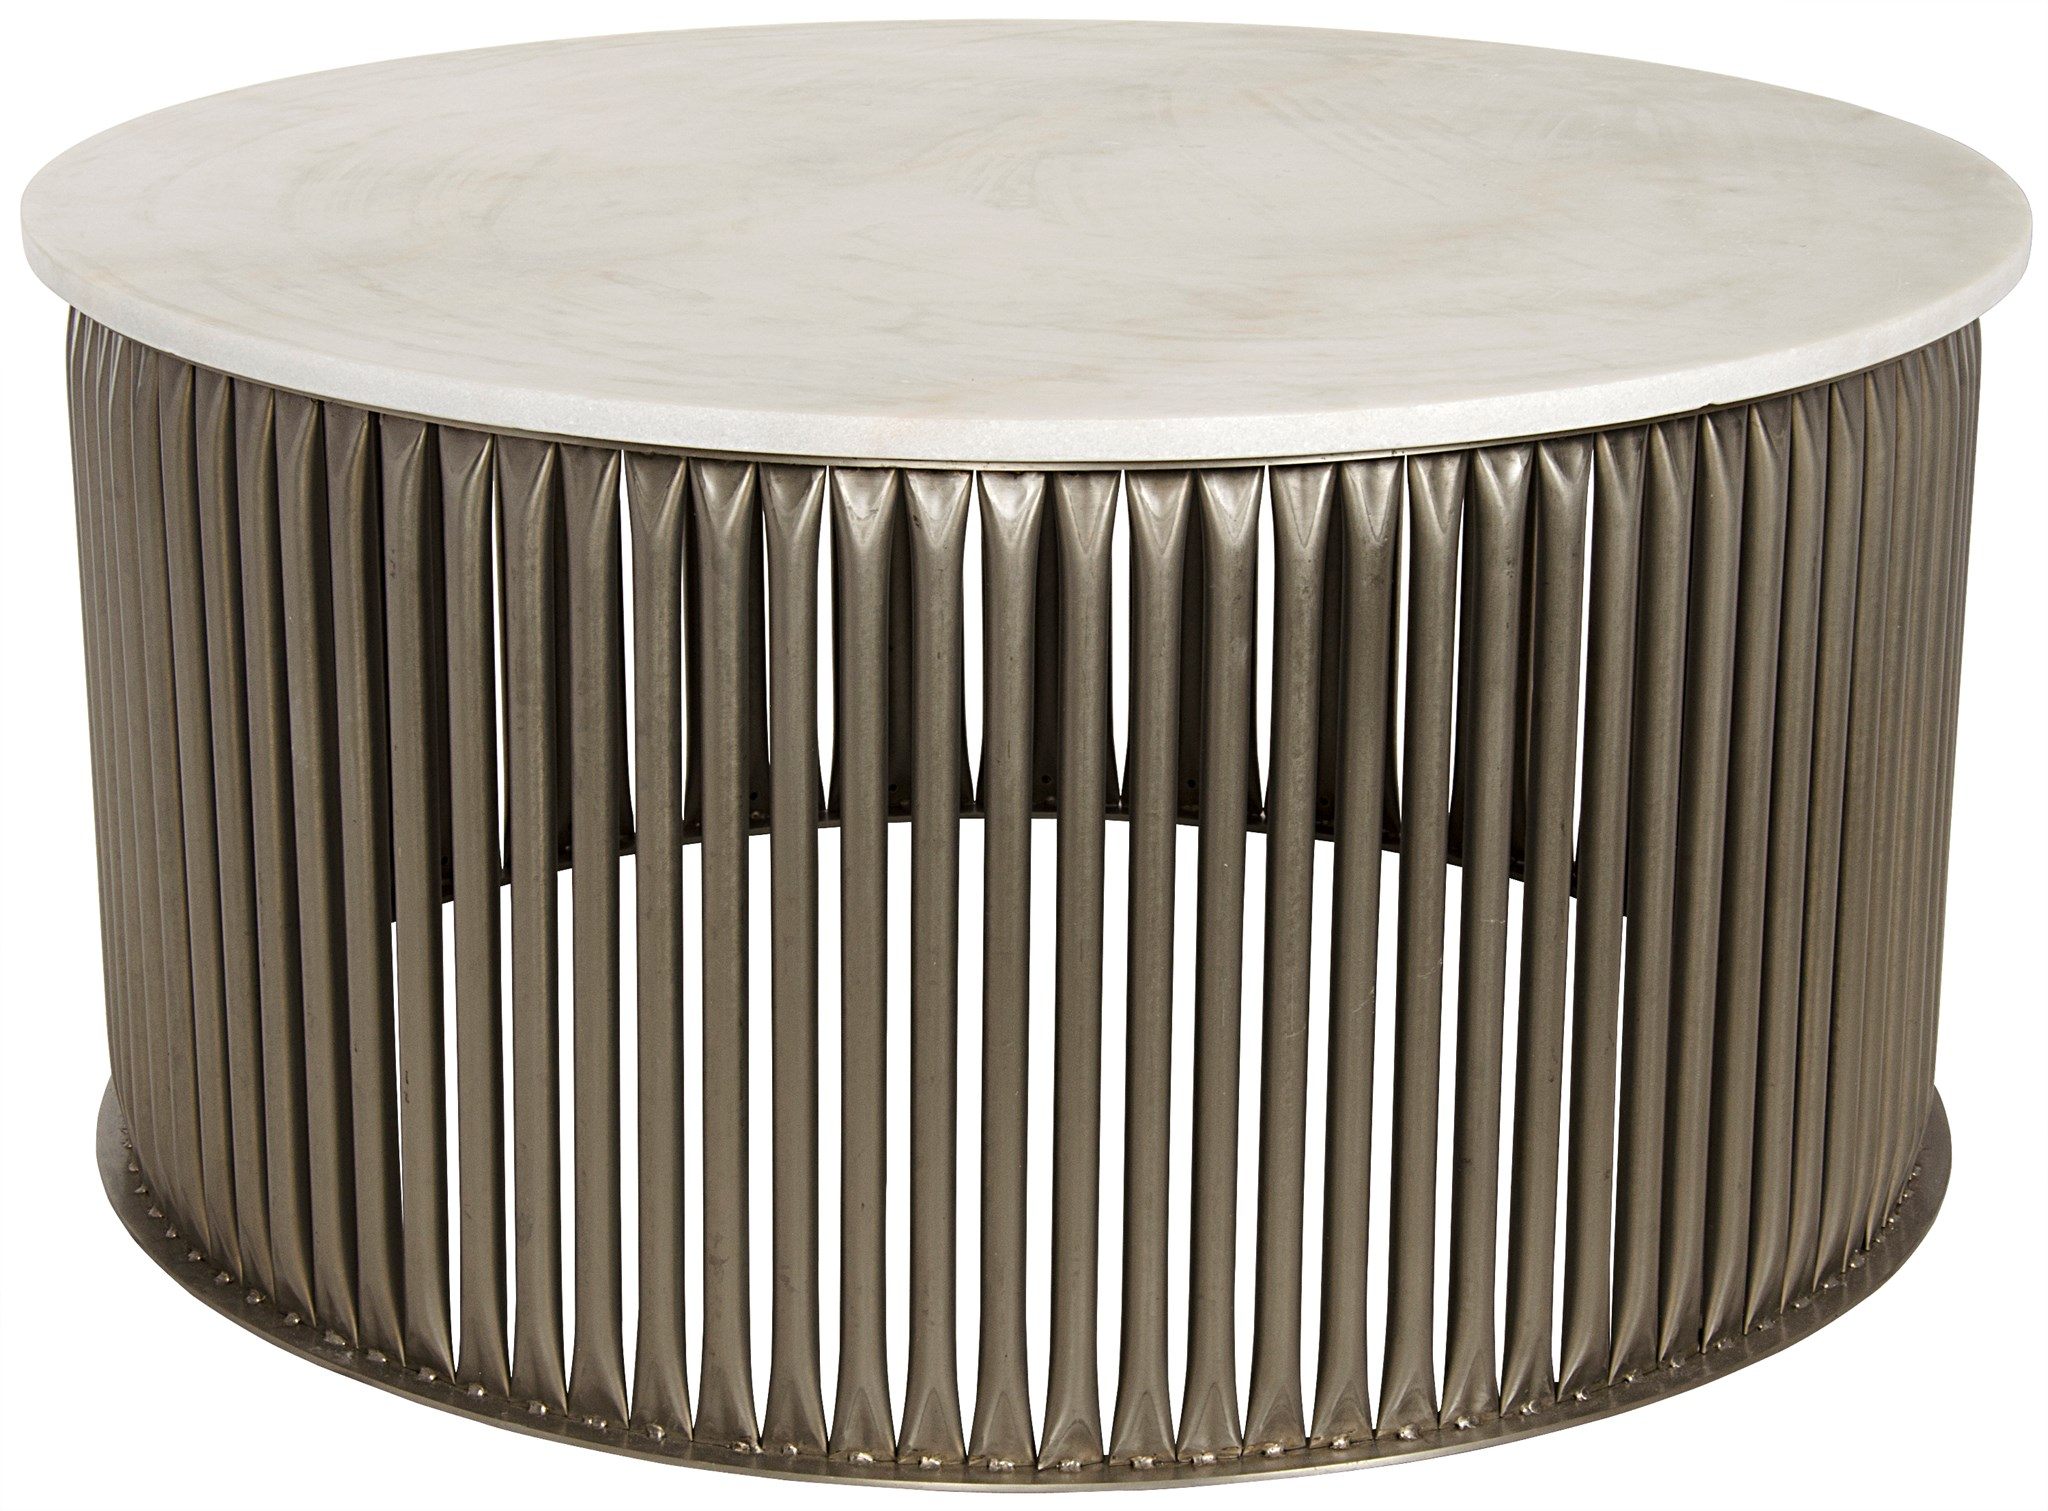 Lenox Coffee Table Antique Silver Metal and Stone cocktail